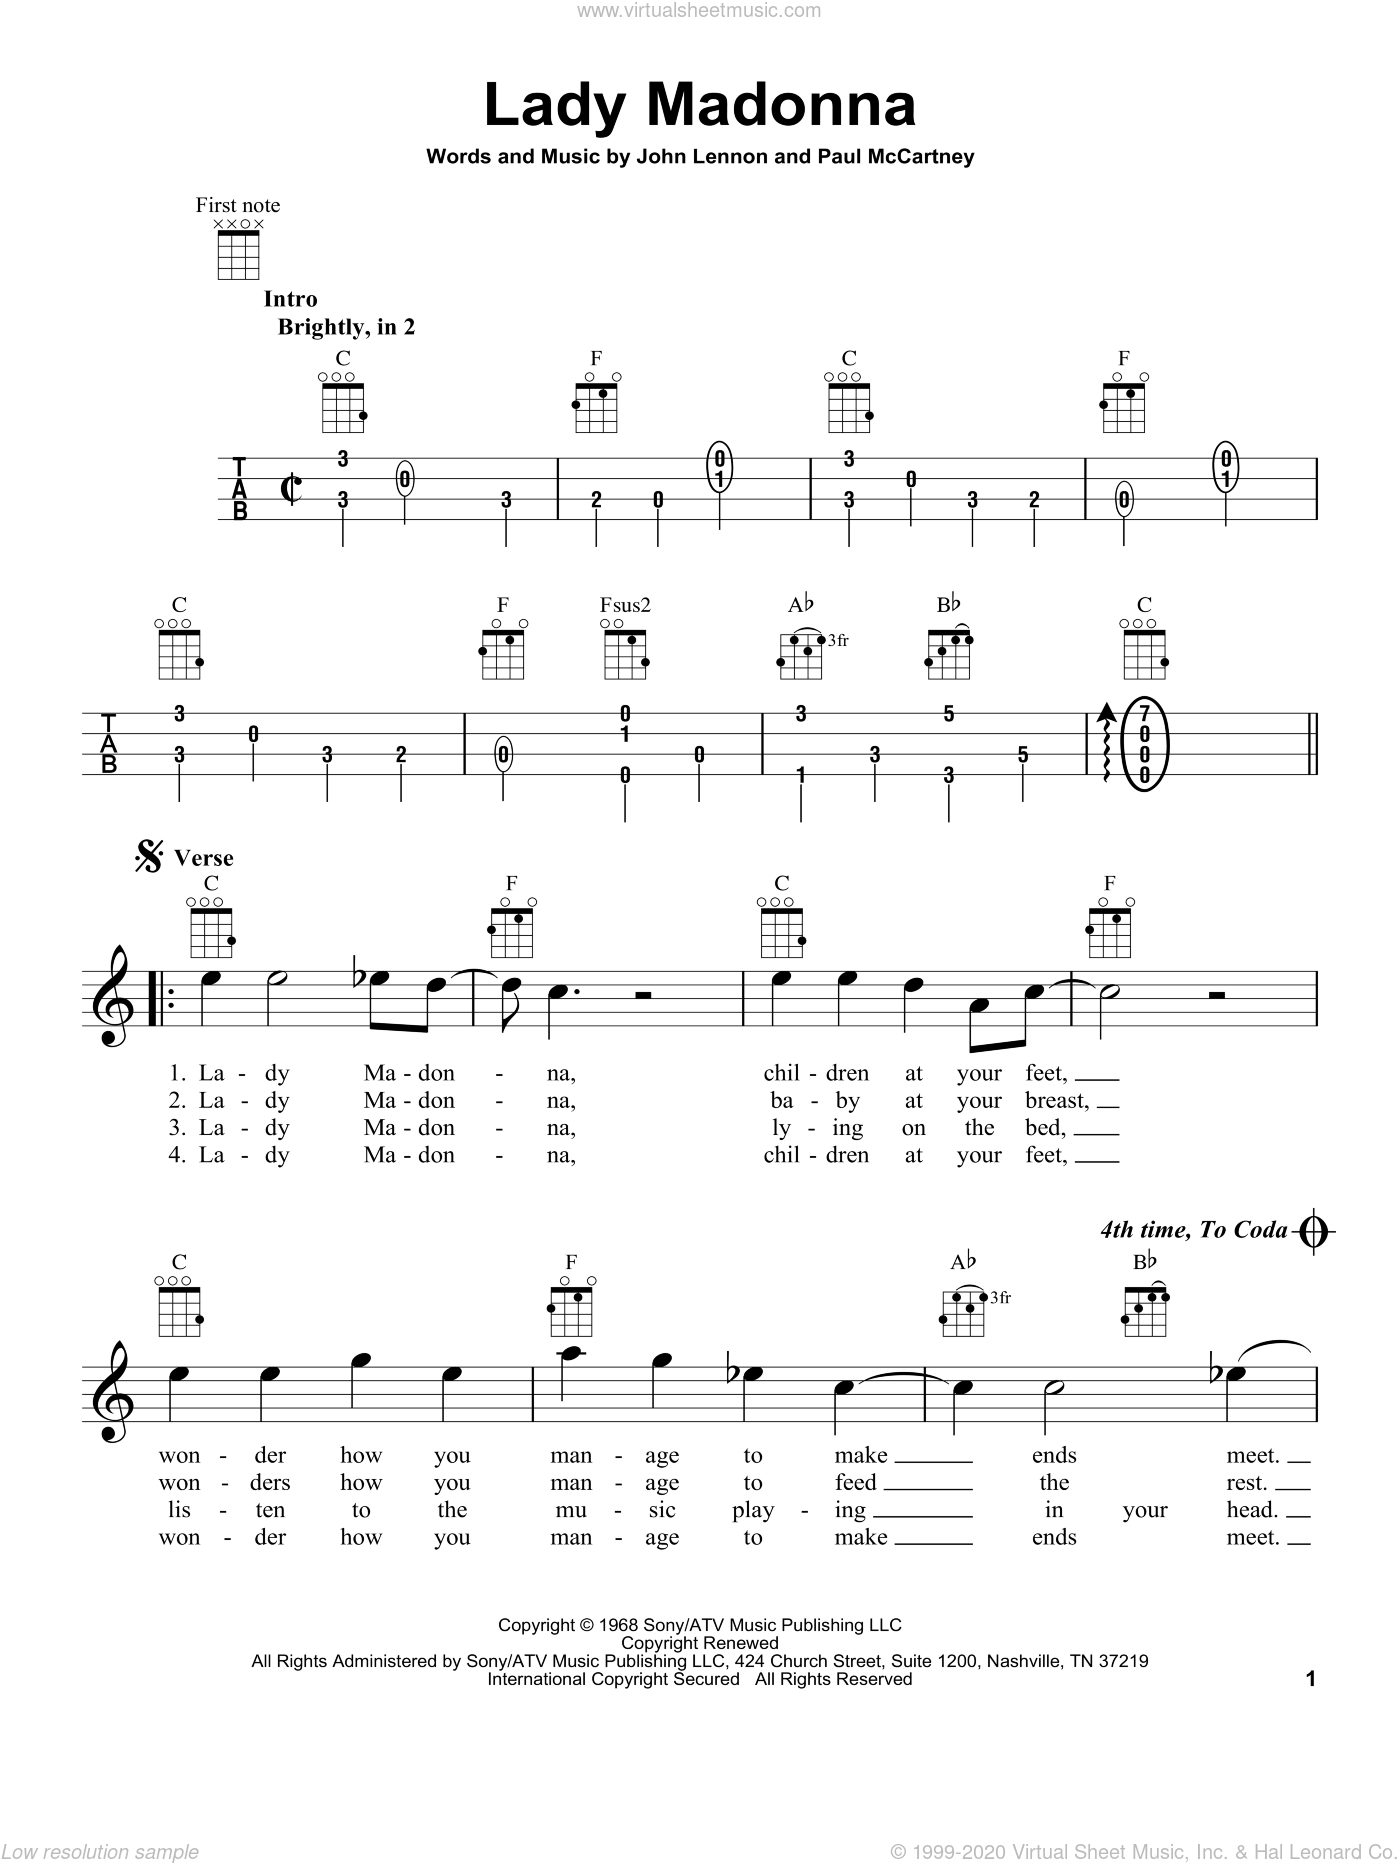 Lady Madonna sheet music for ukulele by Paul McCartney, John Lennon and The Beatles. Score Image Preview.